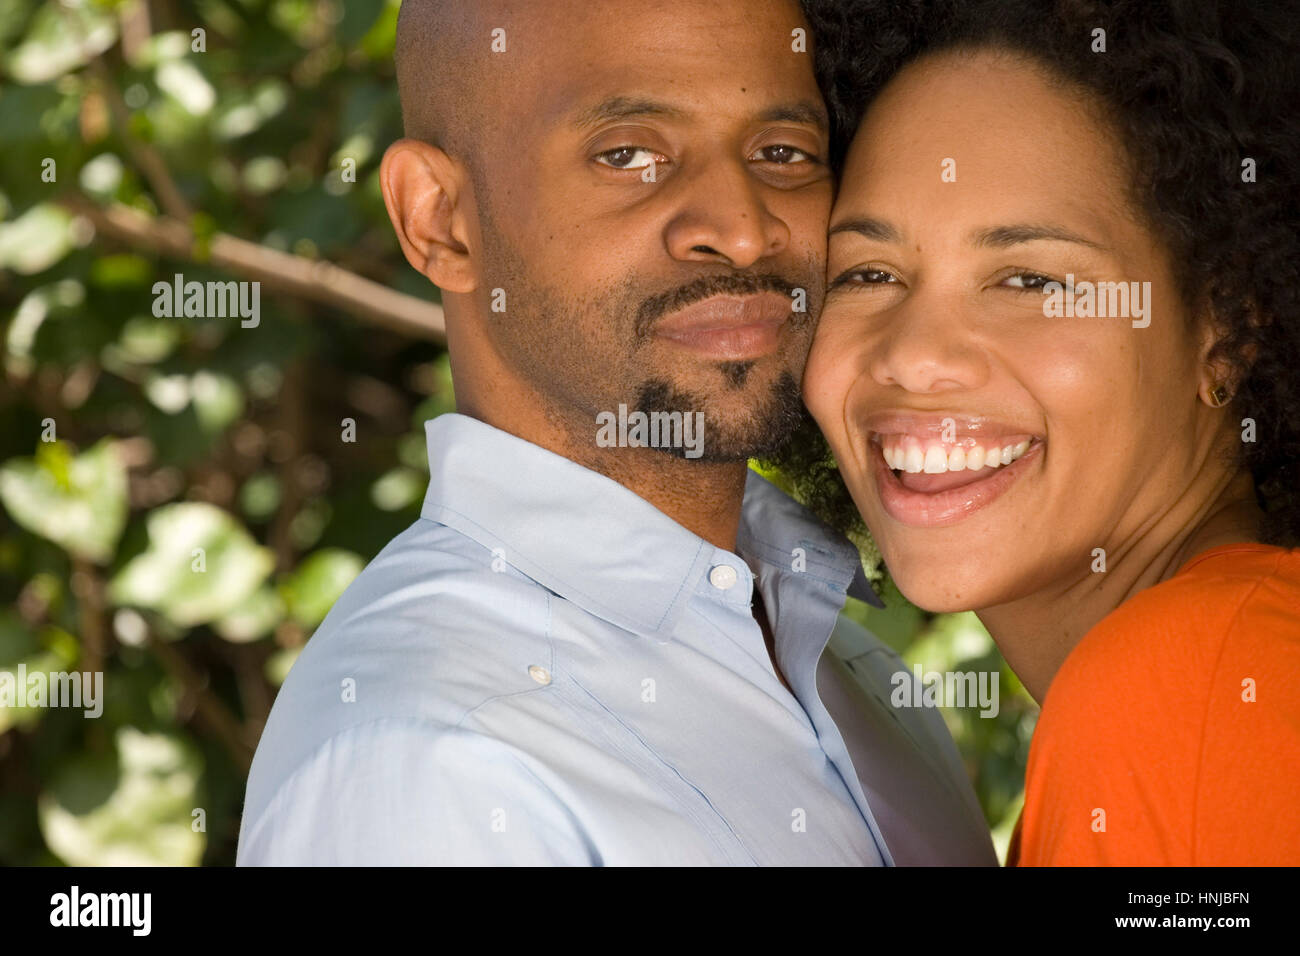 Romantic African American couple hugging outside. - Stock Image